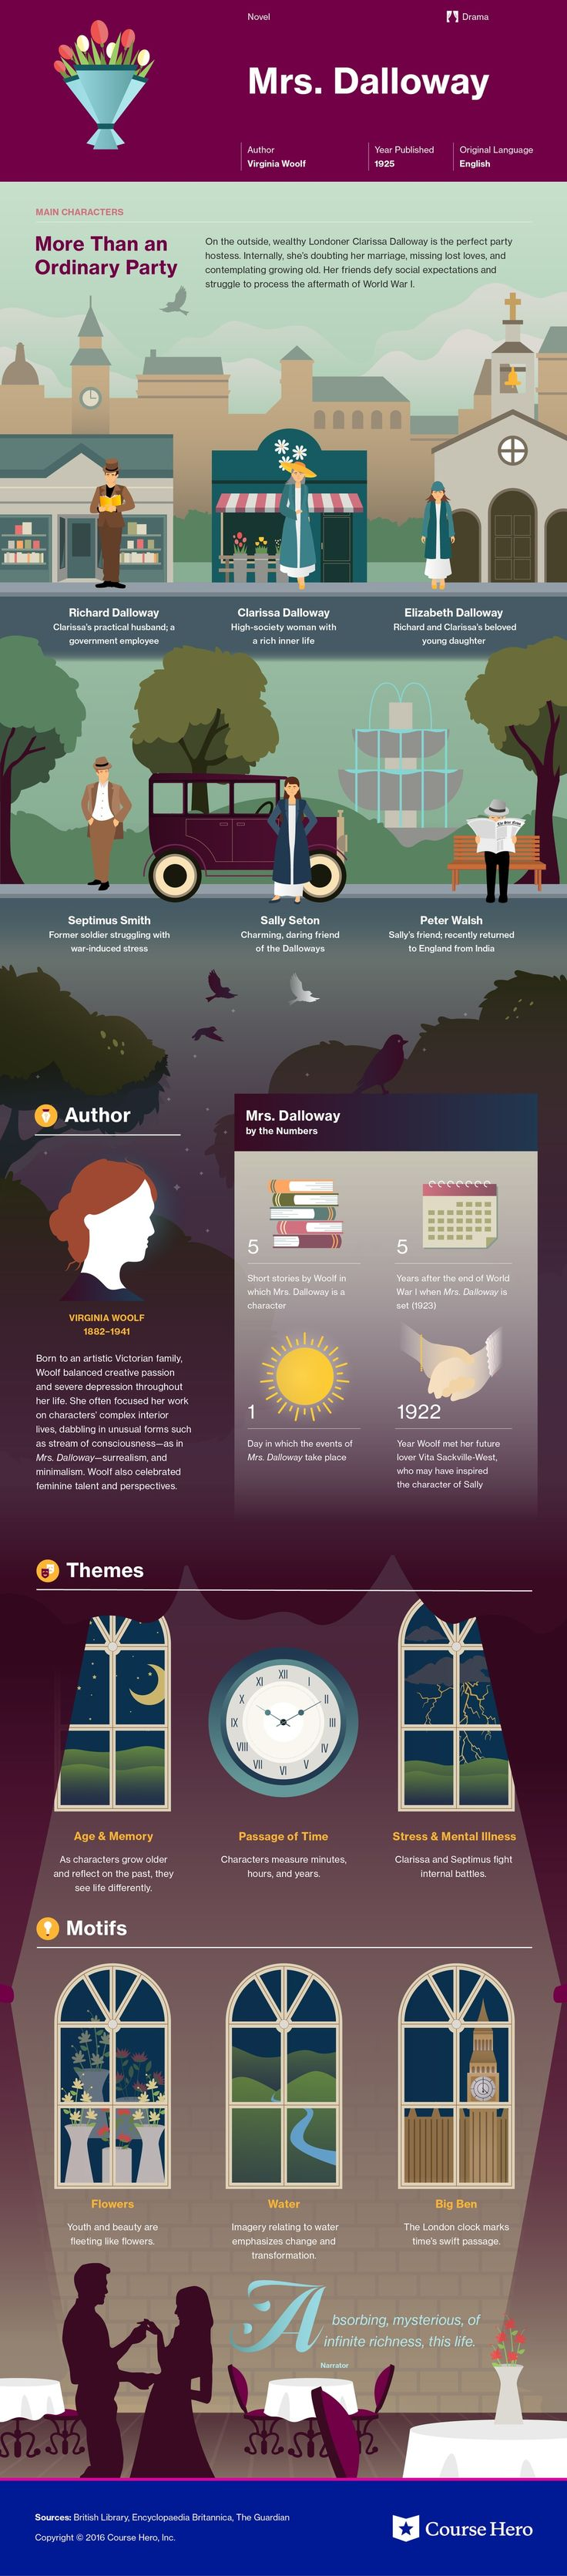 Mrs. Dalloway Infographic   Course Hero